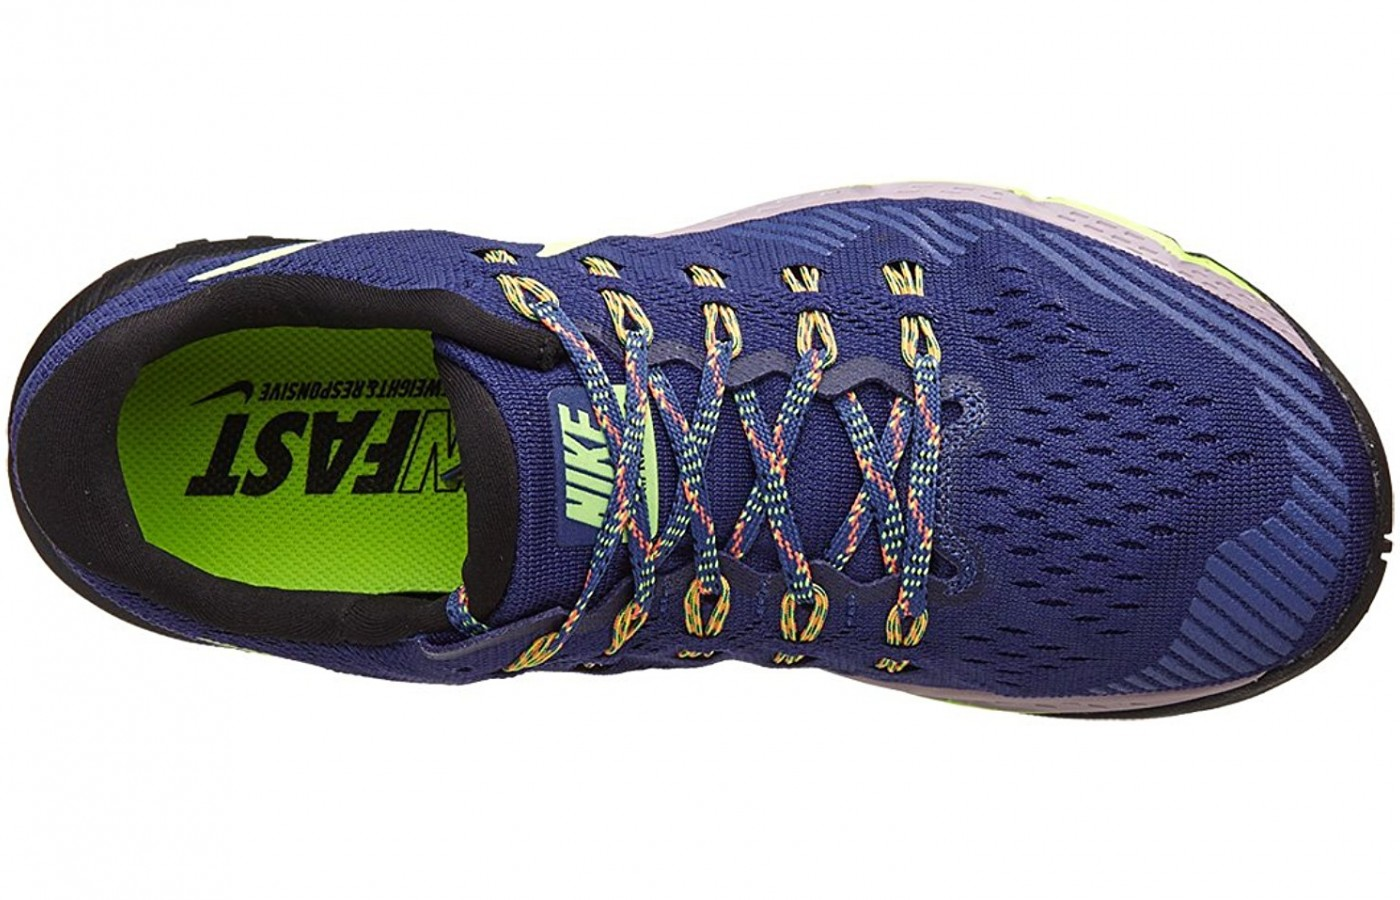 A Top View of the Nike Air Zoom Terra Kiger 3 Running Shoe